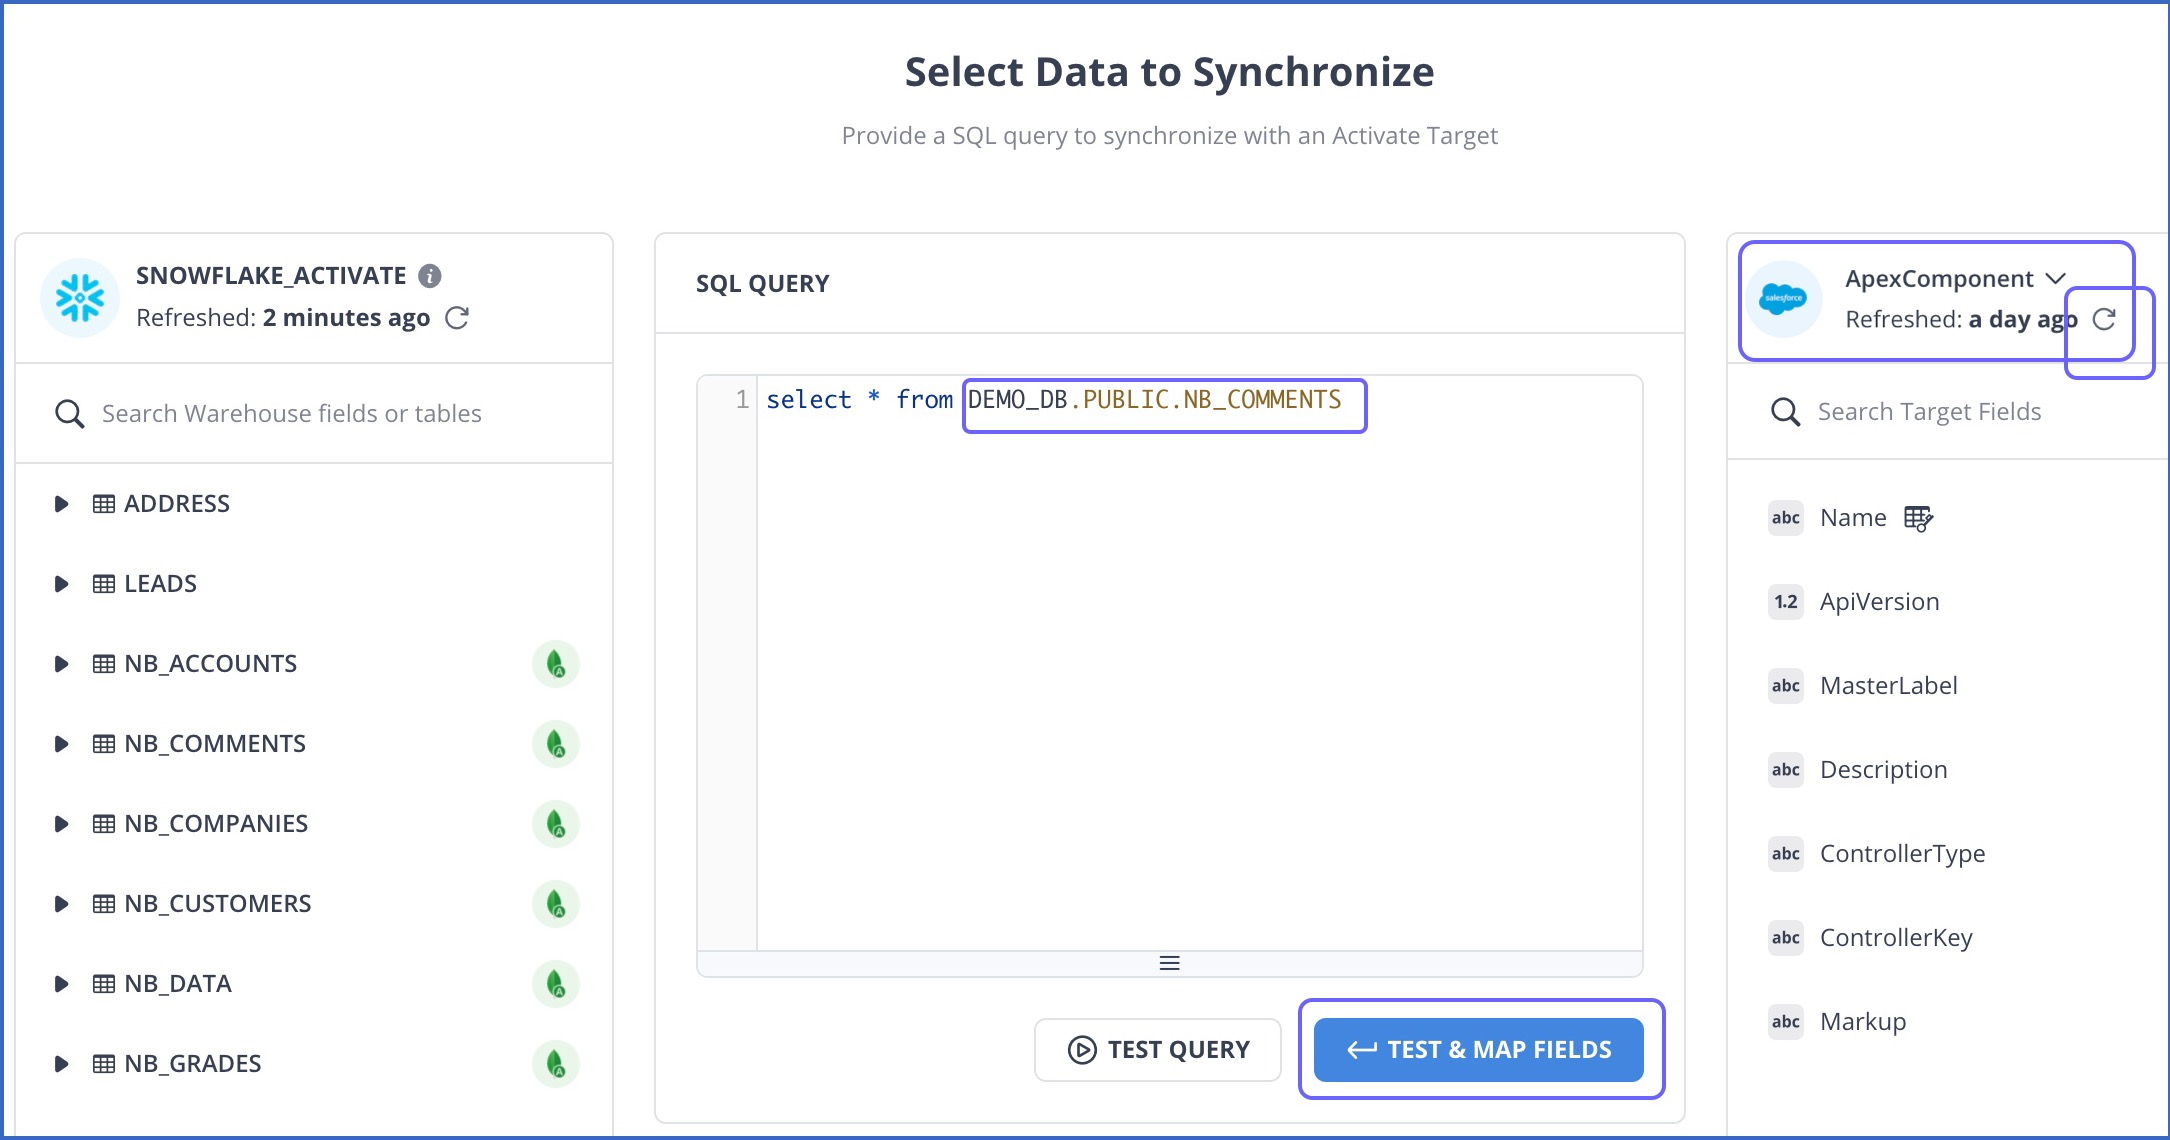 Select Data to synchronize